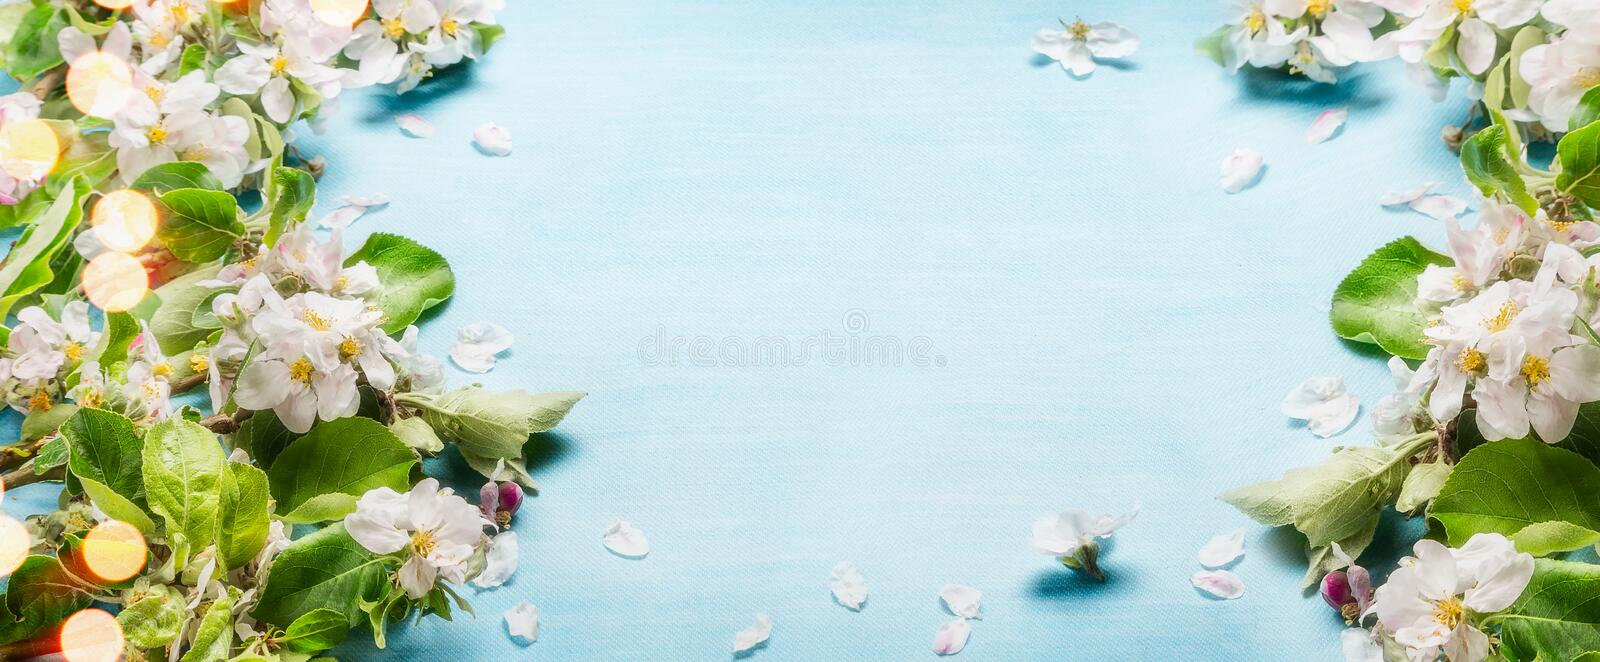 Spring blossom twigs on blue turquoise background, top view, frame, border Springtime. Concept stock photo